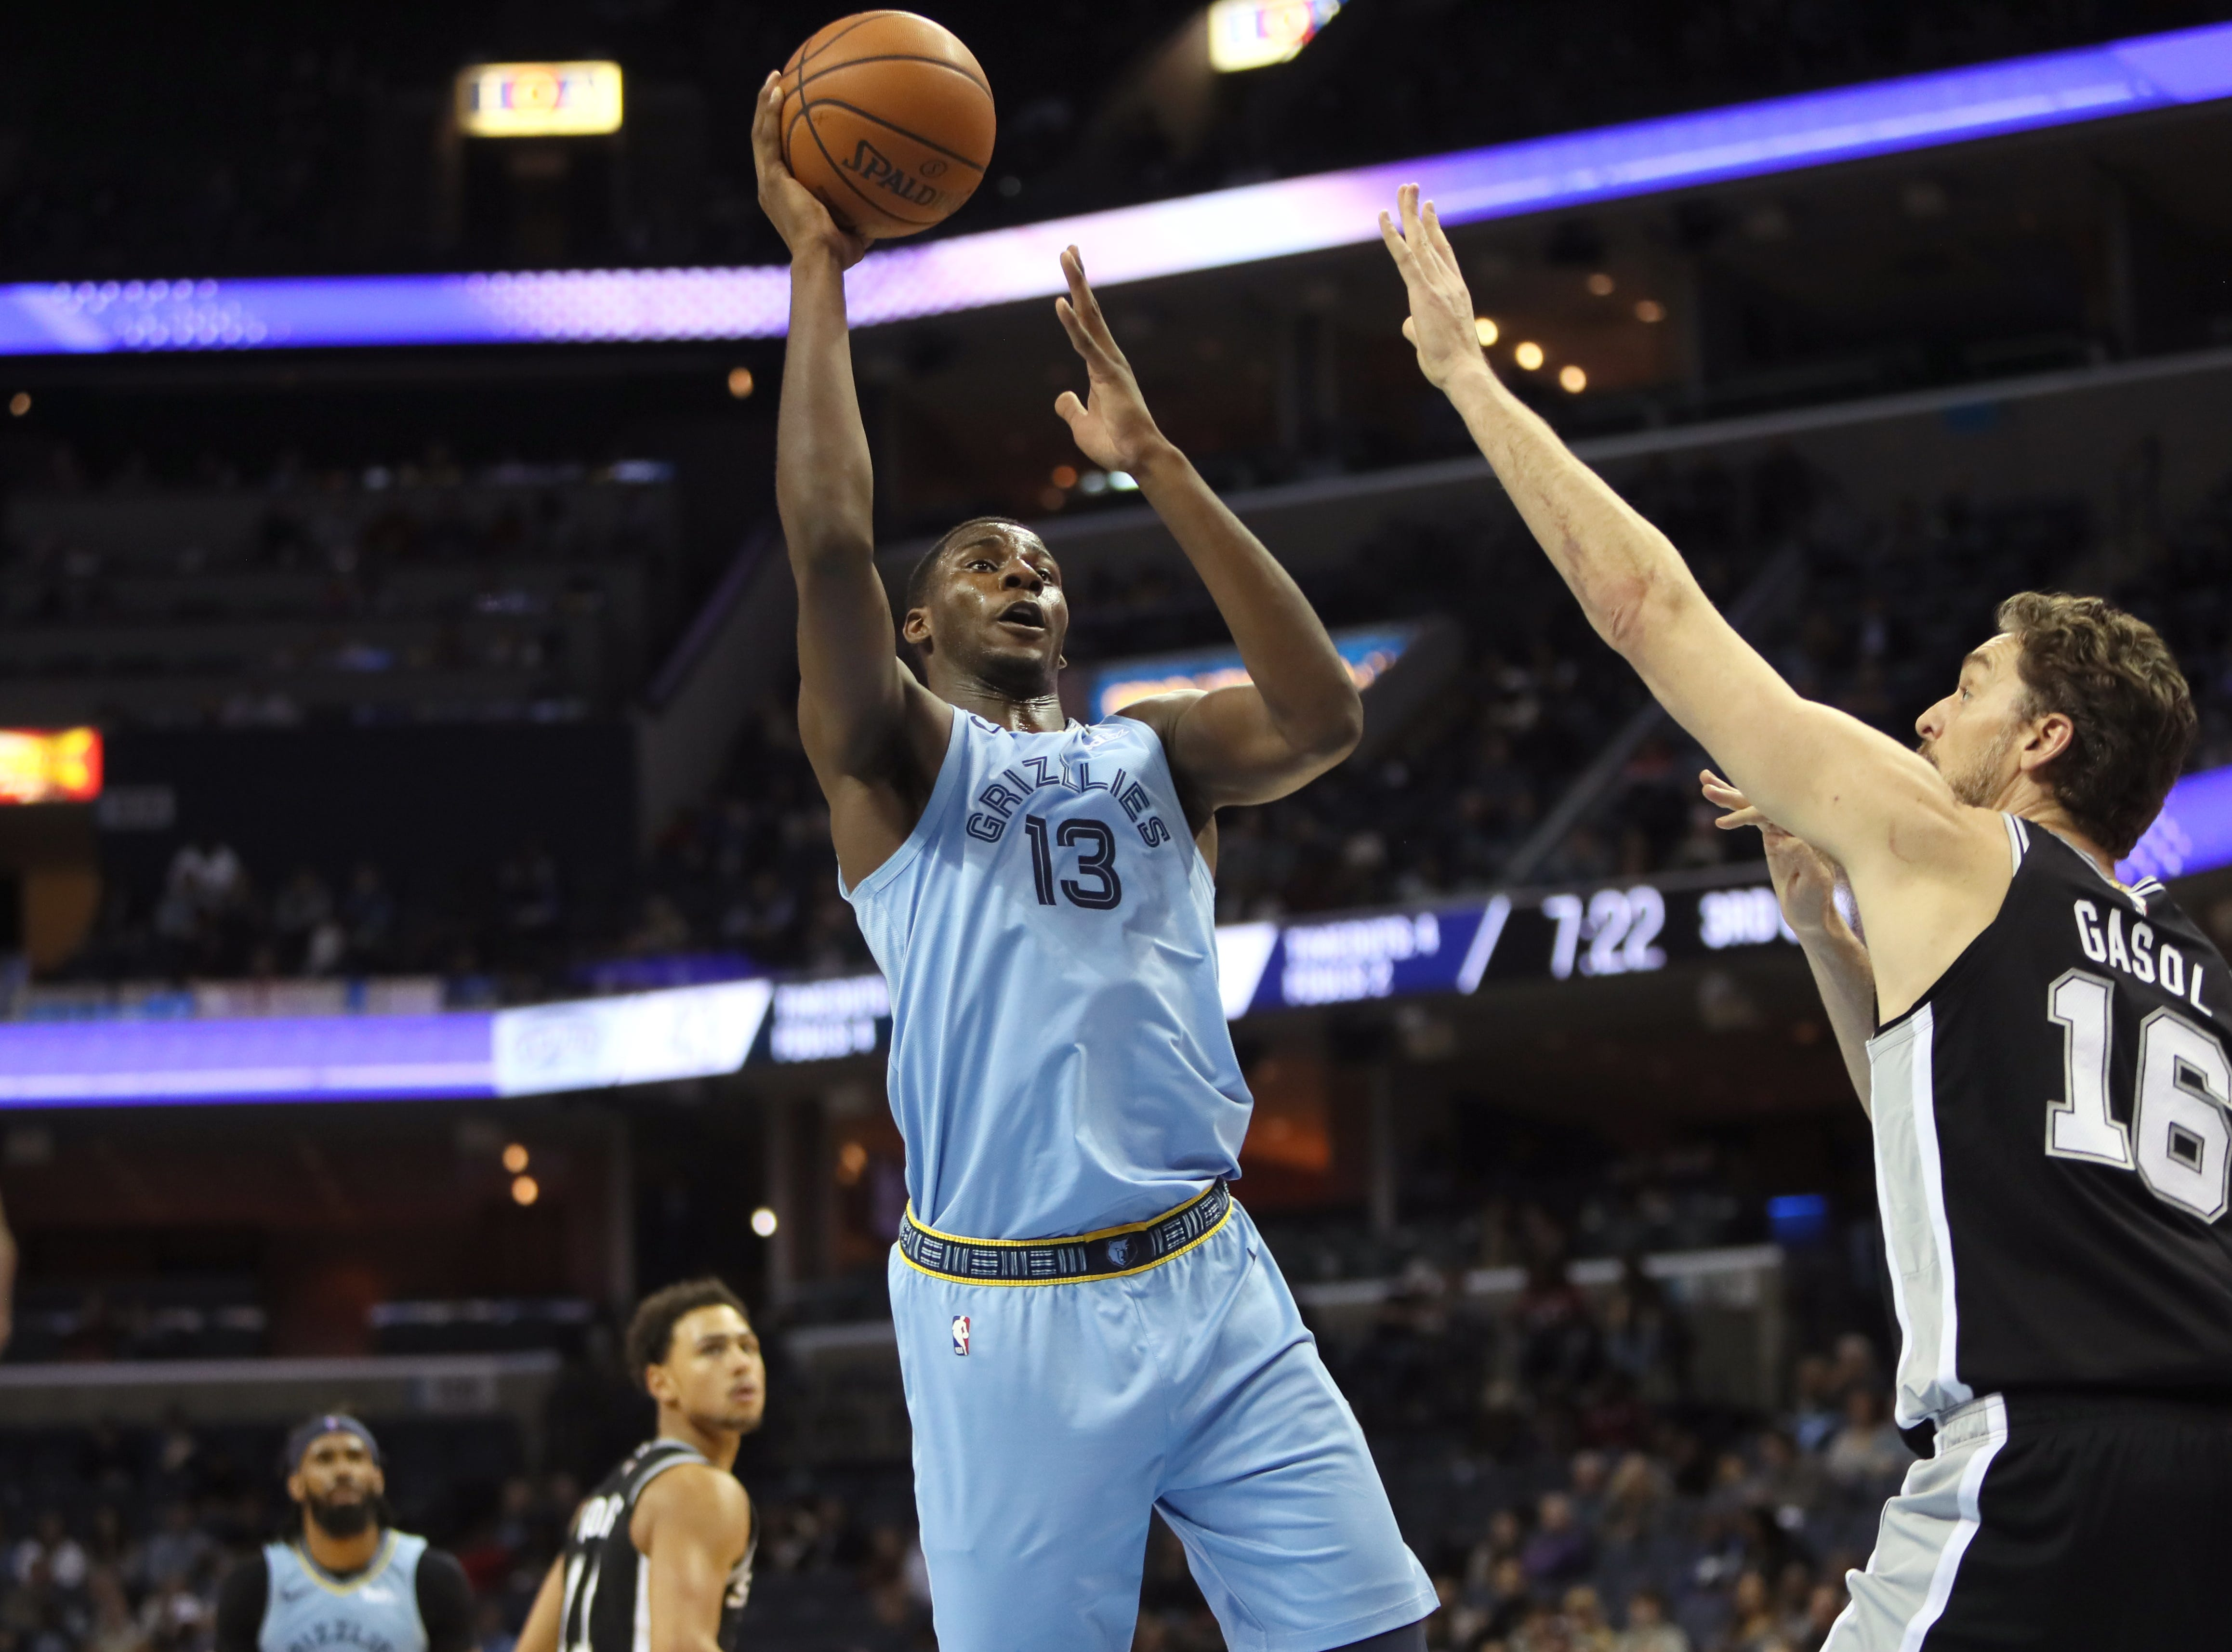 Memphis Grizzlies forward Jaren Jackson Jr. shoots the ball over San Antonio Spurs defender Pau Gasol during their game at the FedExForum on Wednesday, Jan. 9, 2019.